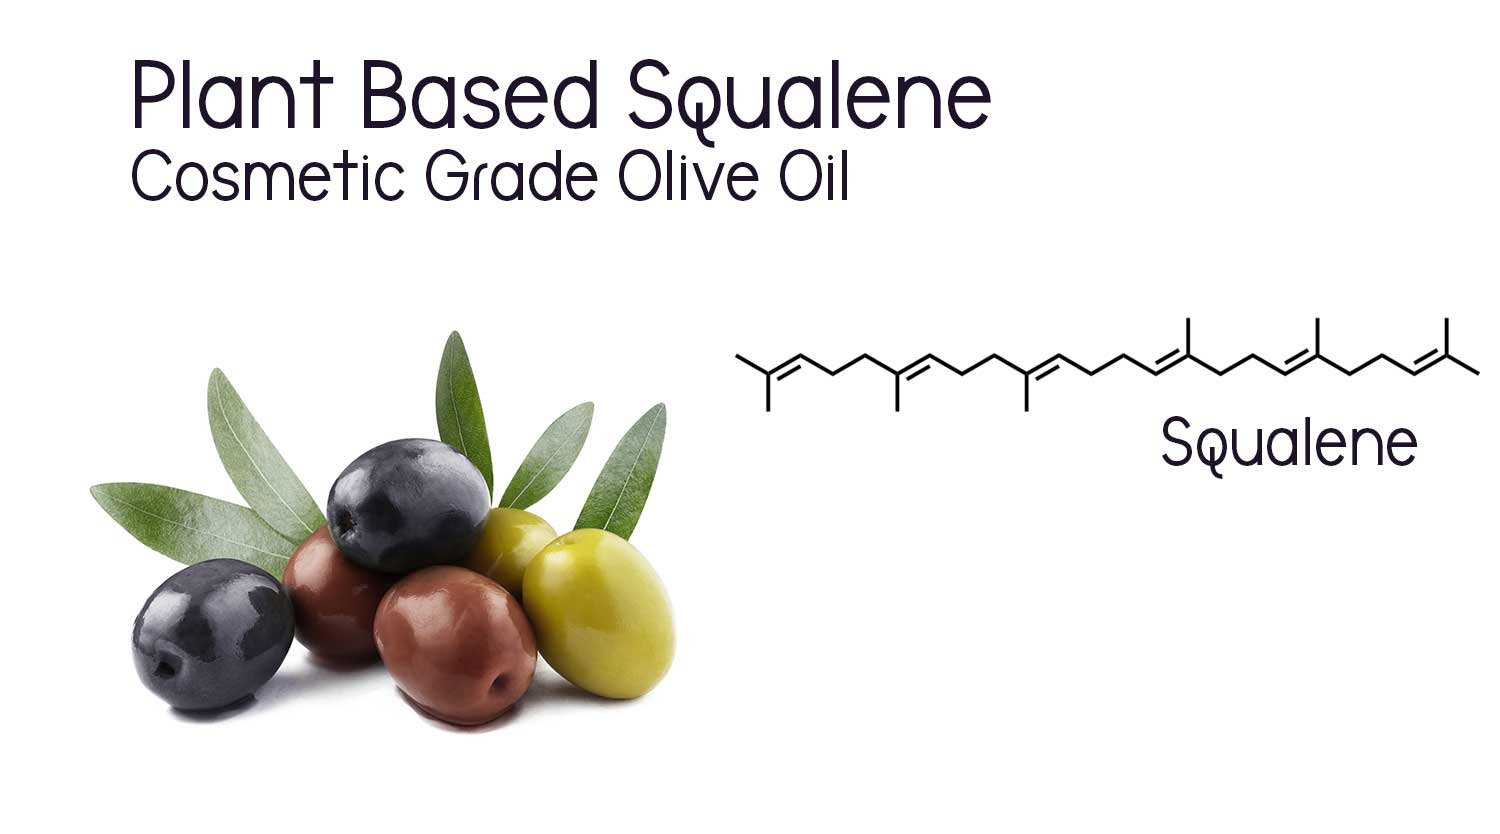 Squalane is sought after for its skin moisturizing, calming, and nourishing properties. It can be taken from animal sources, but we prefer to use cosmetic grade olive oil as the source.  We strive for earth friendly products, so plant based is always our first choice. But, did you know that olives can contain 300 times the amount of squalane than other natural sources, including animal sources?